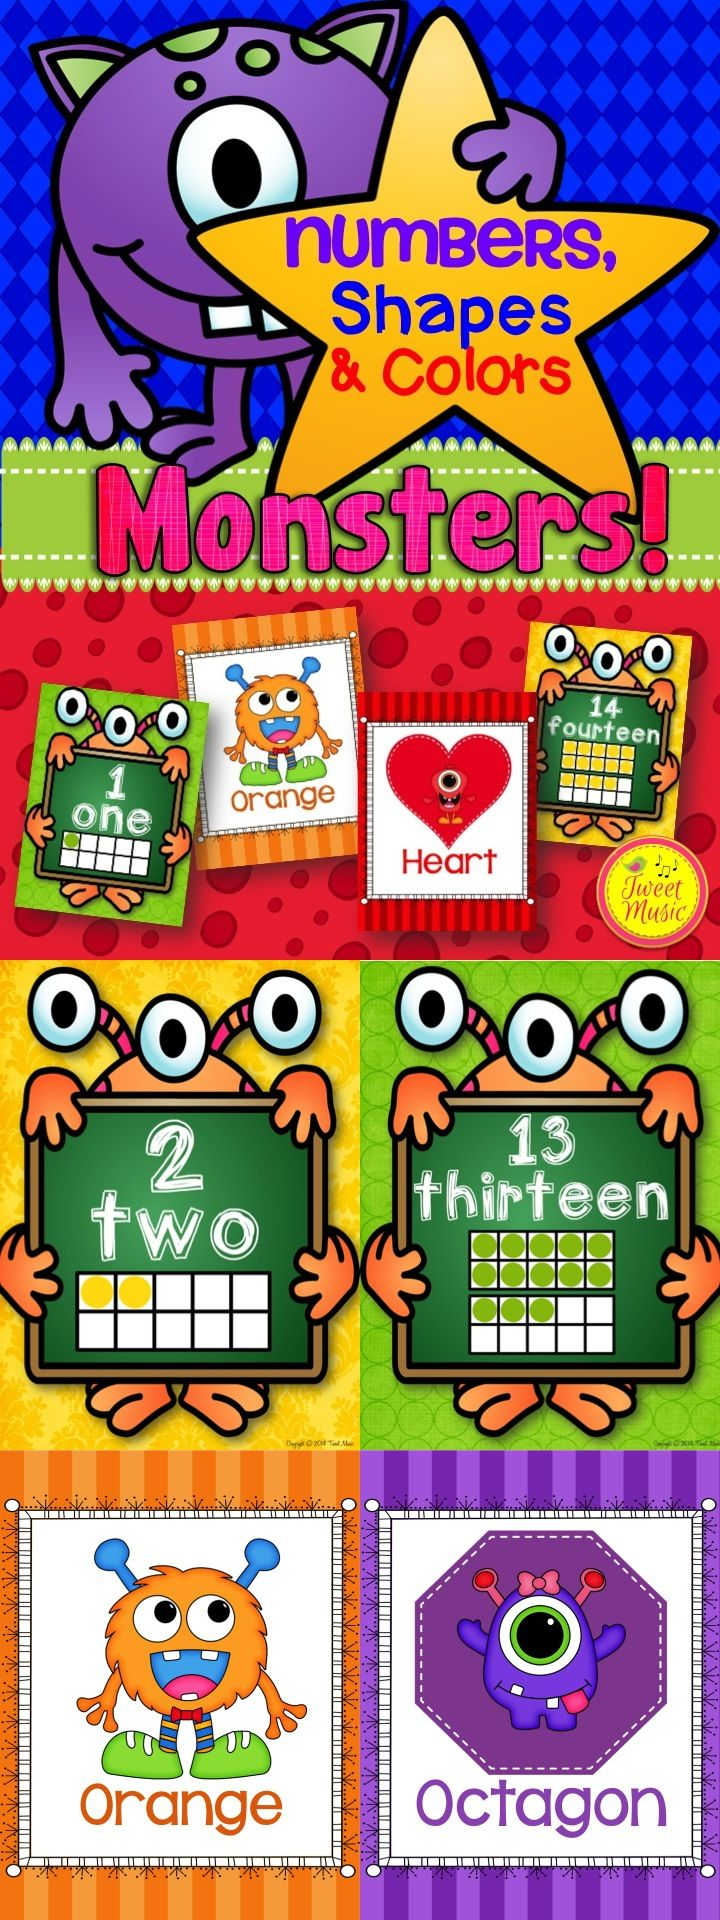 Decorate your classroom this year with this Monster themed Numbers, Shapes and Colors Poster Set! $